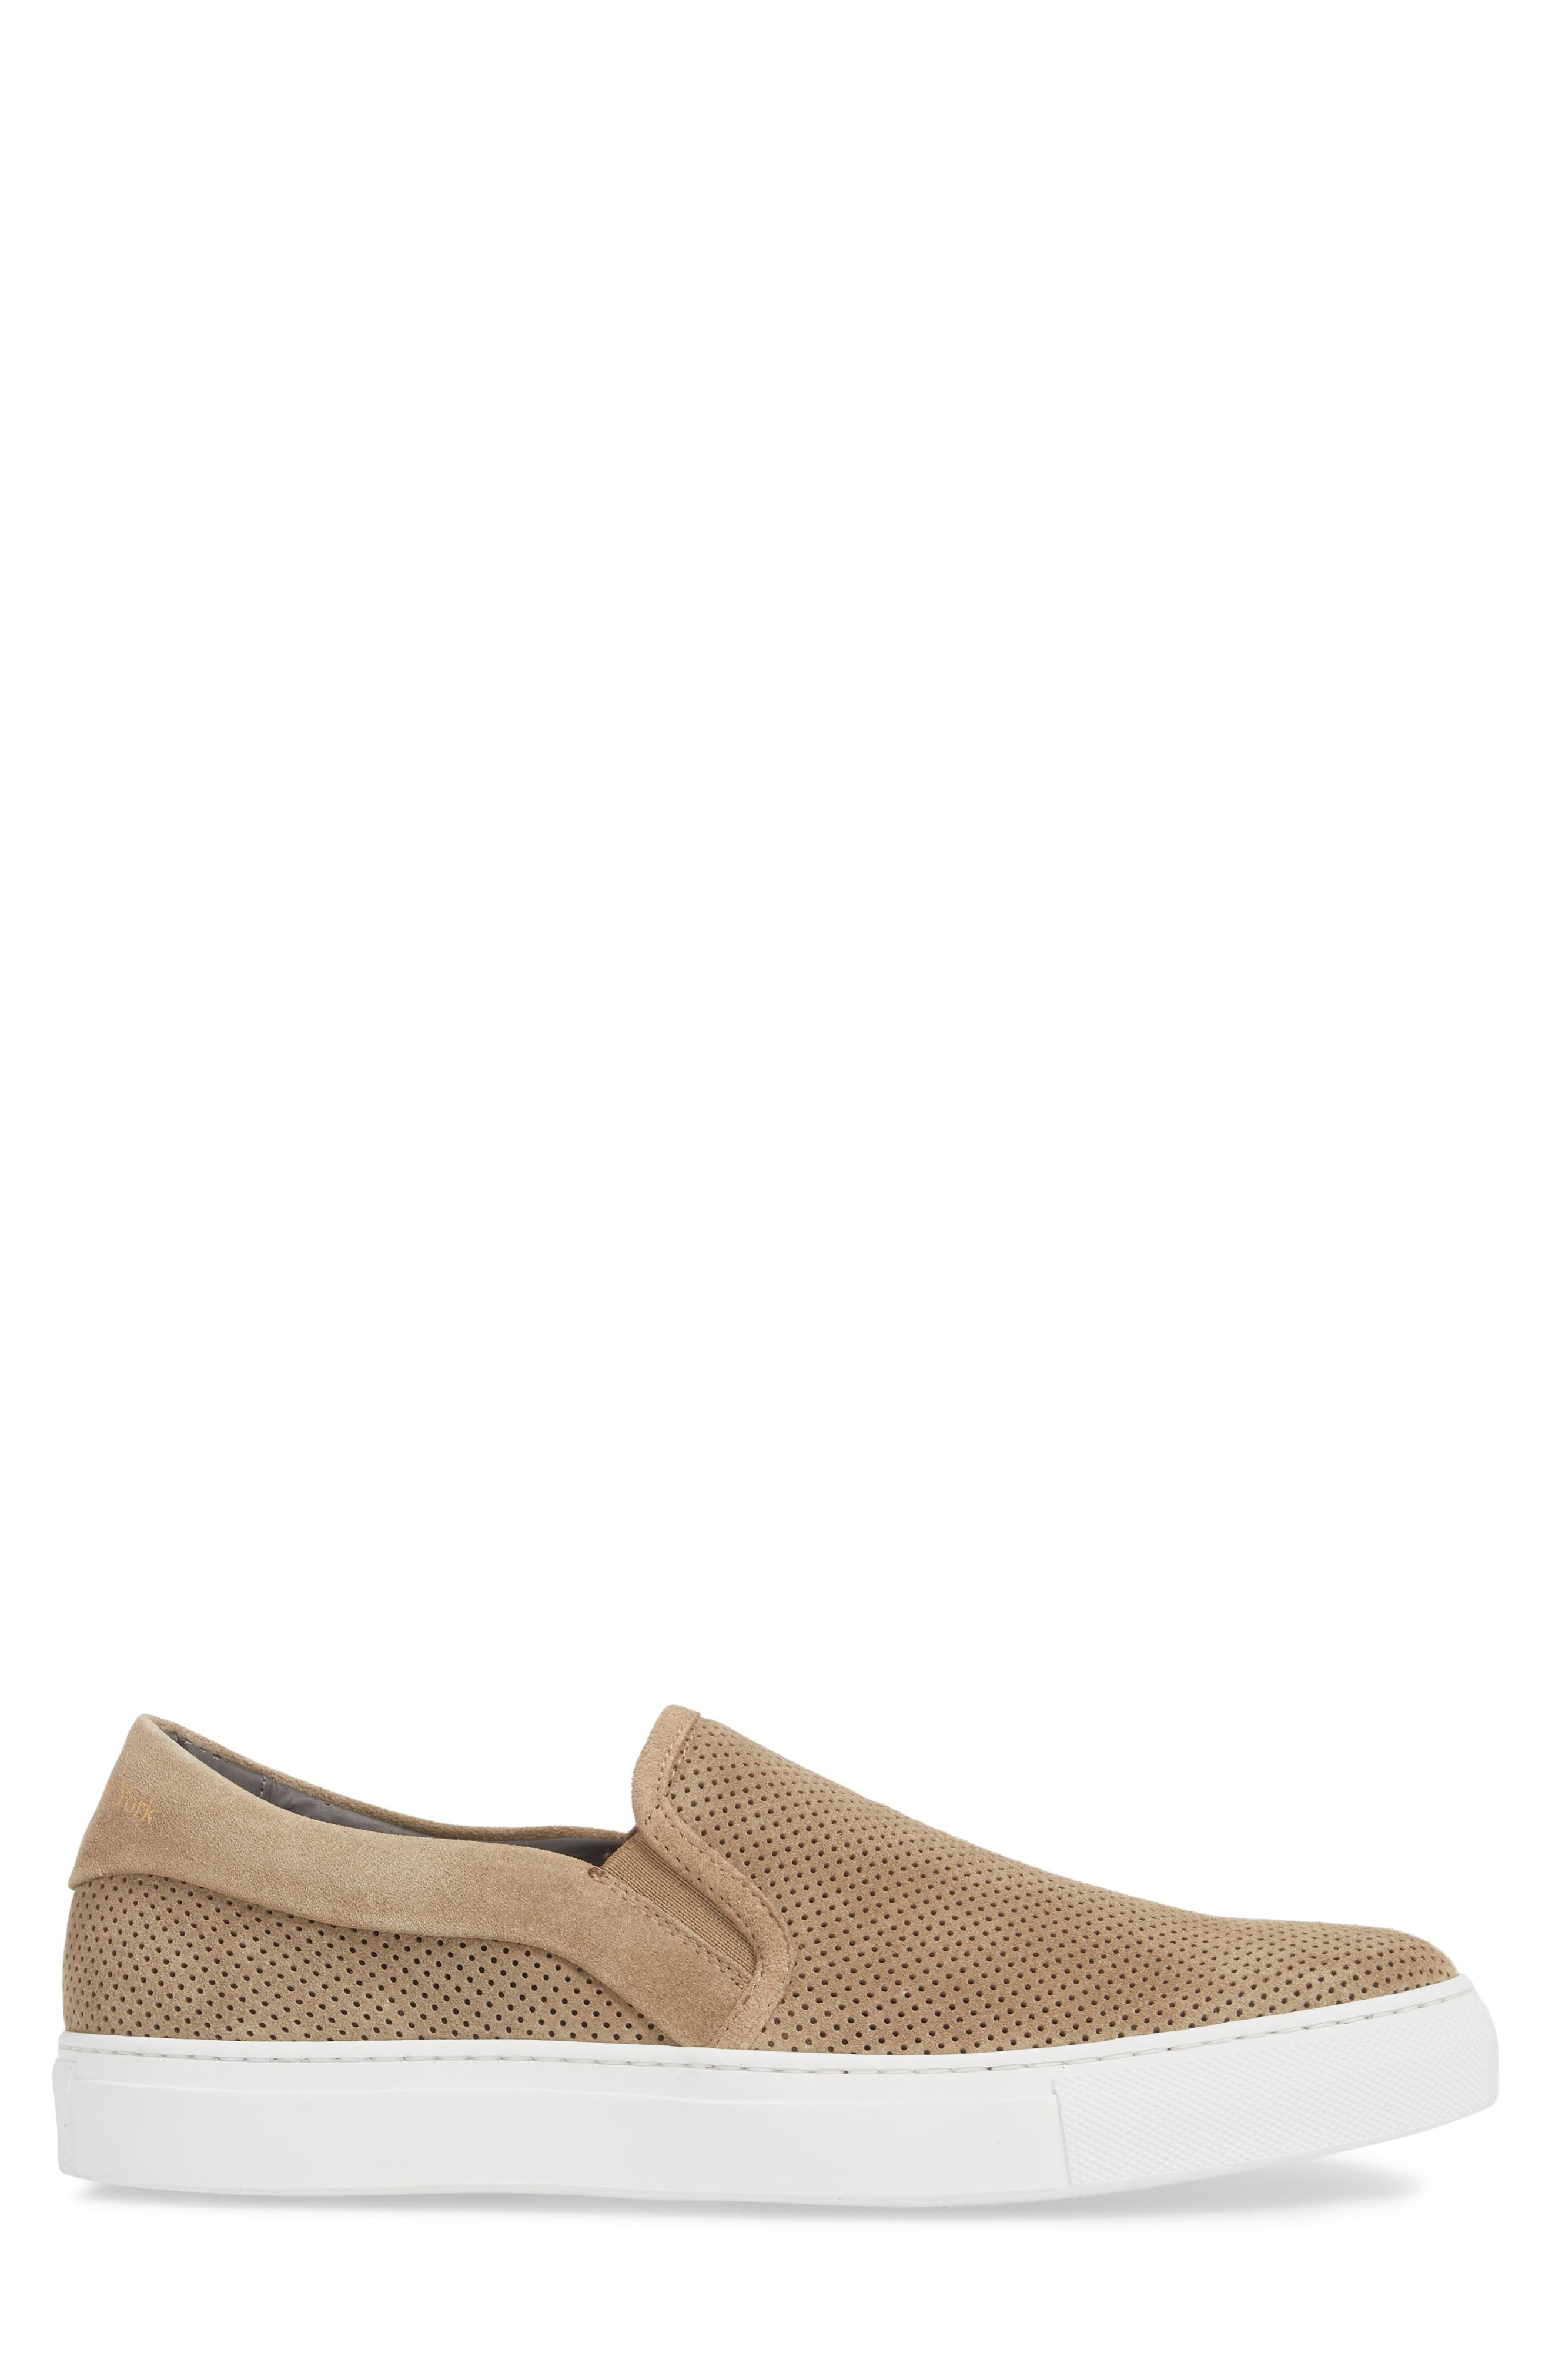 Buelton Perforated Slip-On Sneaker,                             Alternate thumbnail 3, color,                             BROWN SUEDE